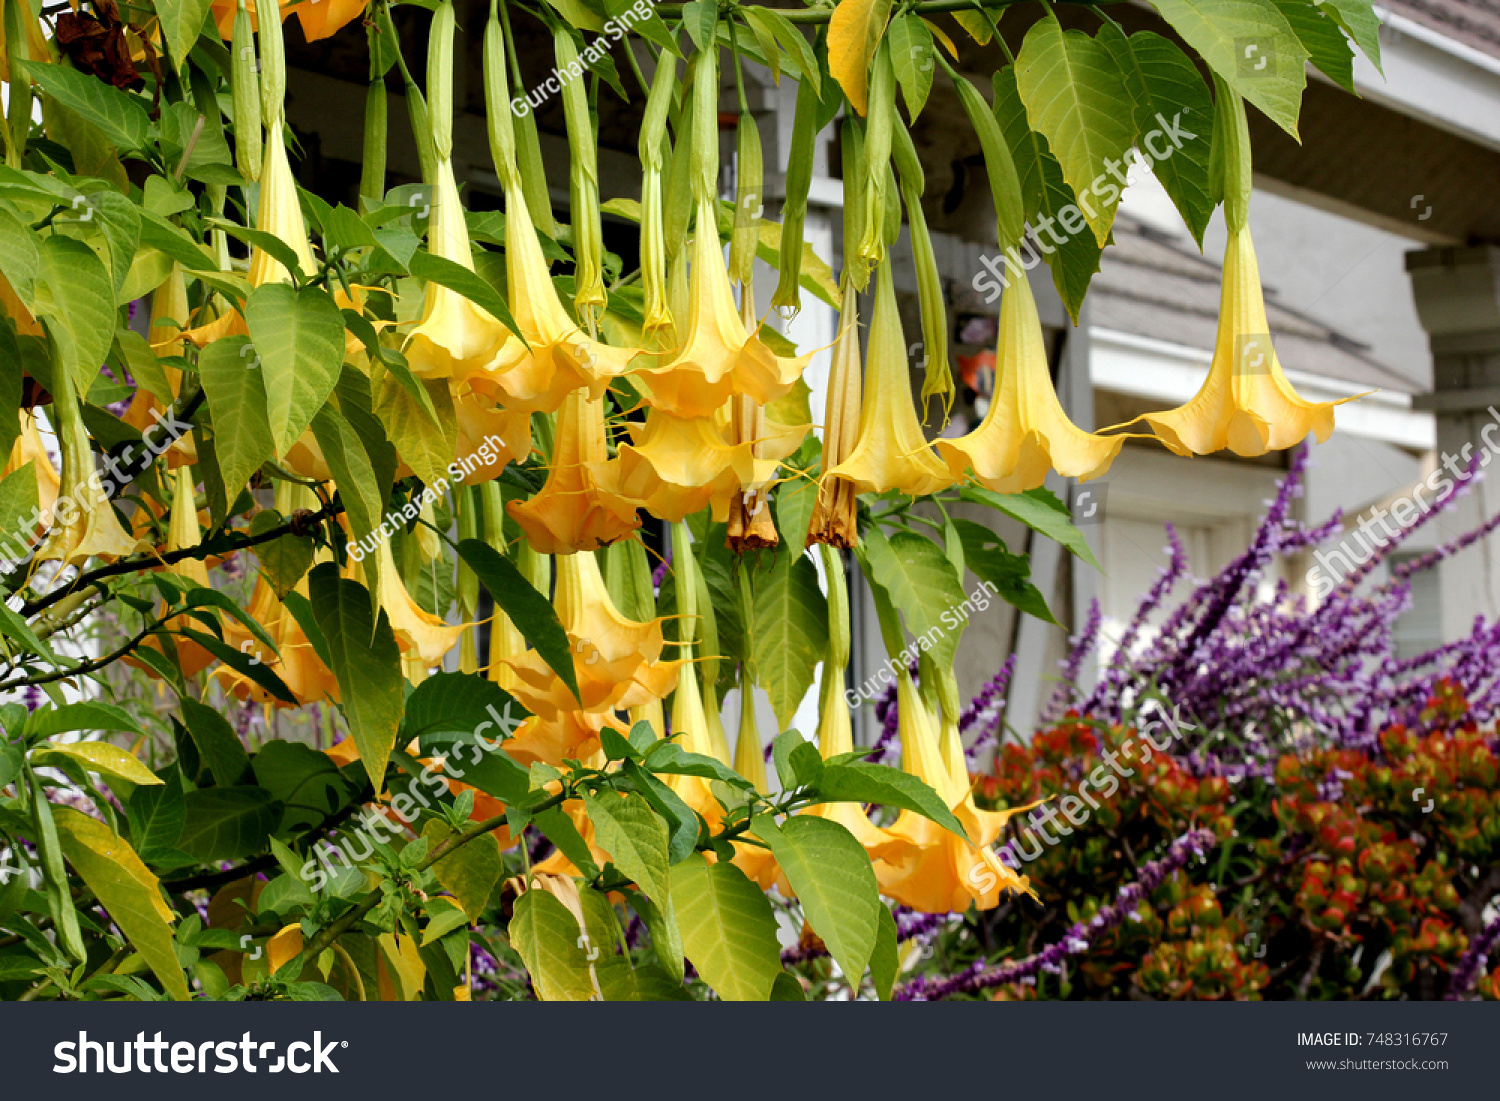 Brugmansia Suaveolens Angels Trumpet Shrub Tree Stock Photo Royalty